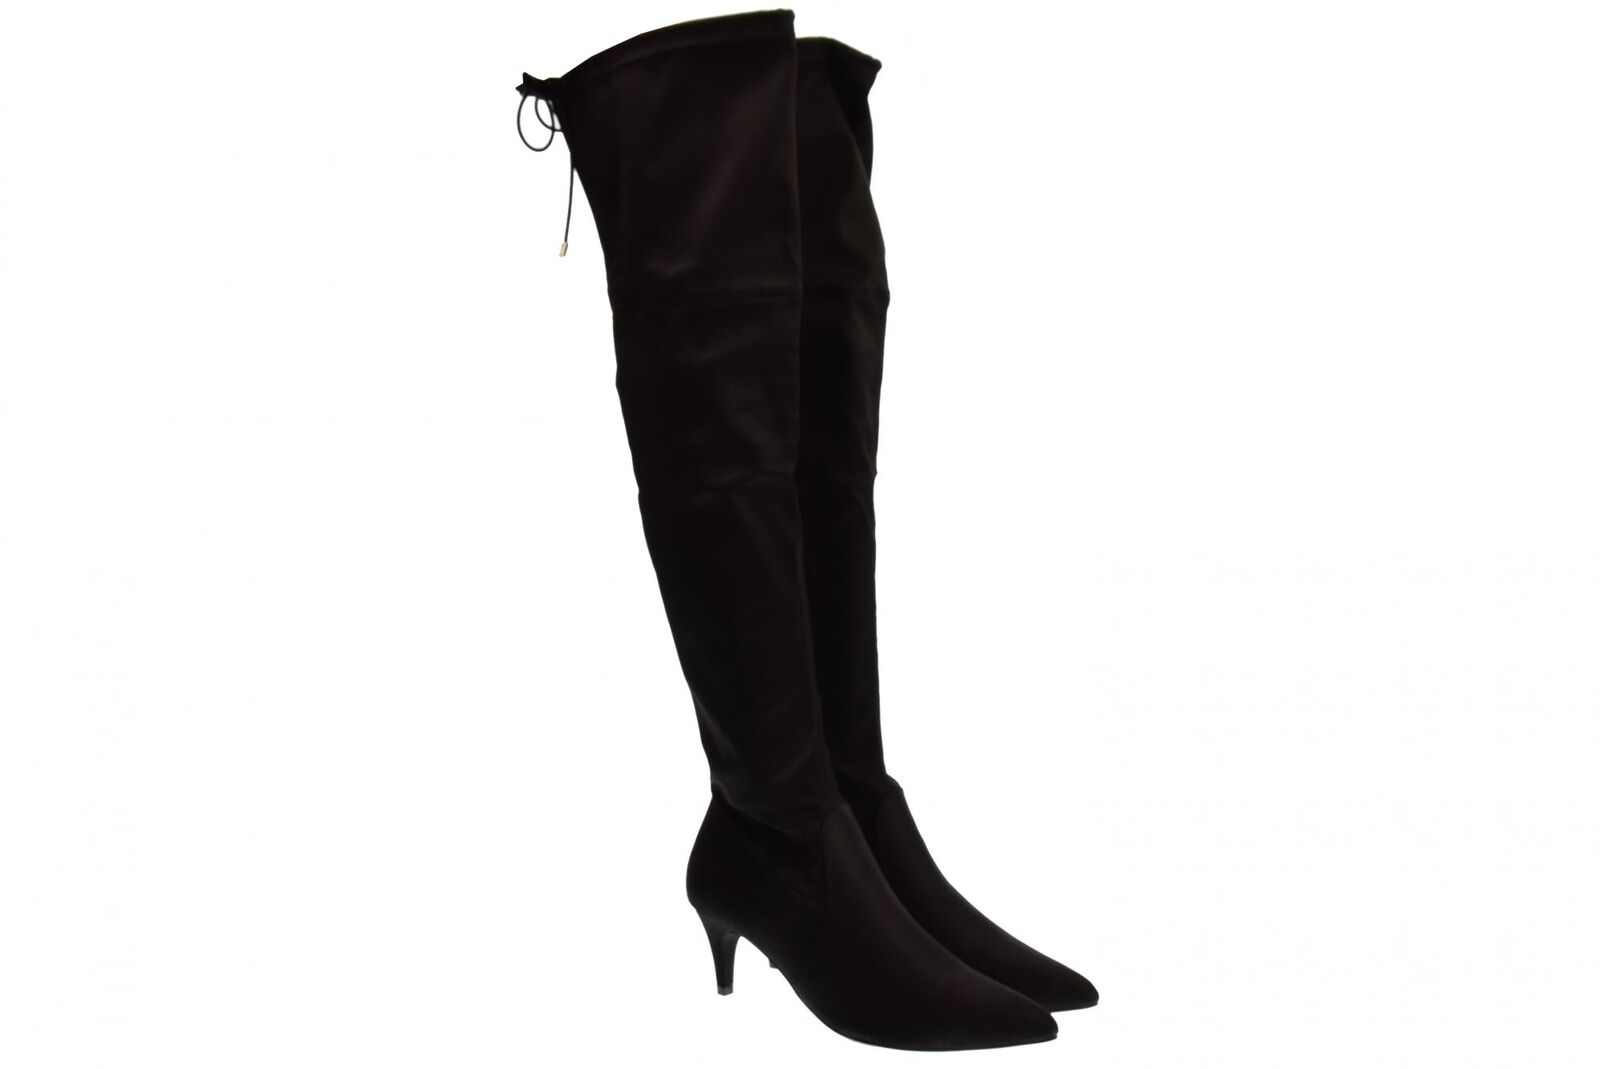 Mariamare a18g Chaussures Femmes Bottes 62251 c37109 Gisele